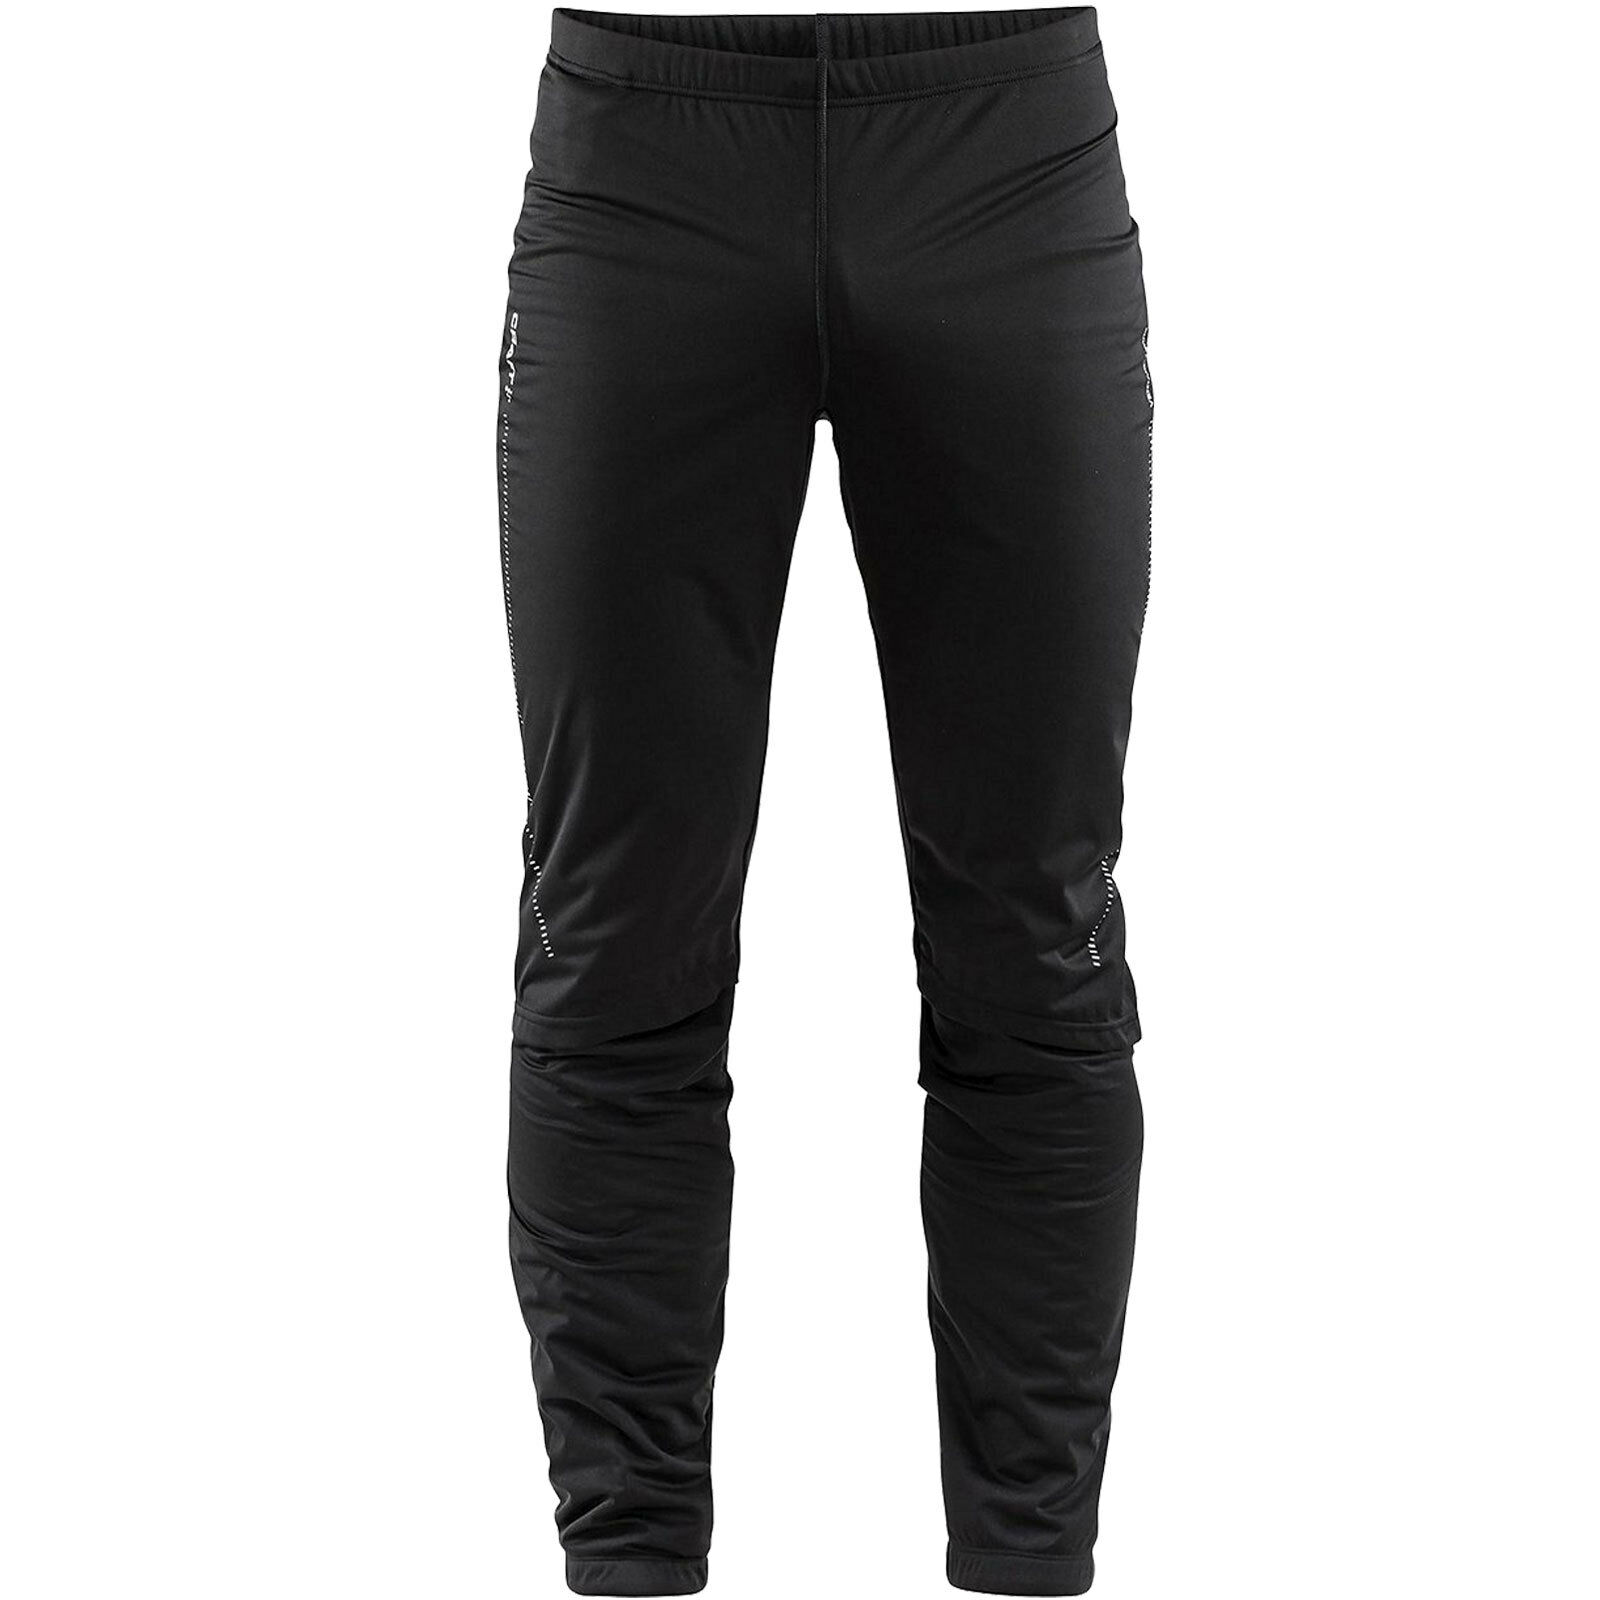 Craft  Storm Tights Mens Skiing Trousers Salopettes function Pants Winter Trousers Pant Ski  inexpensive